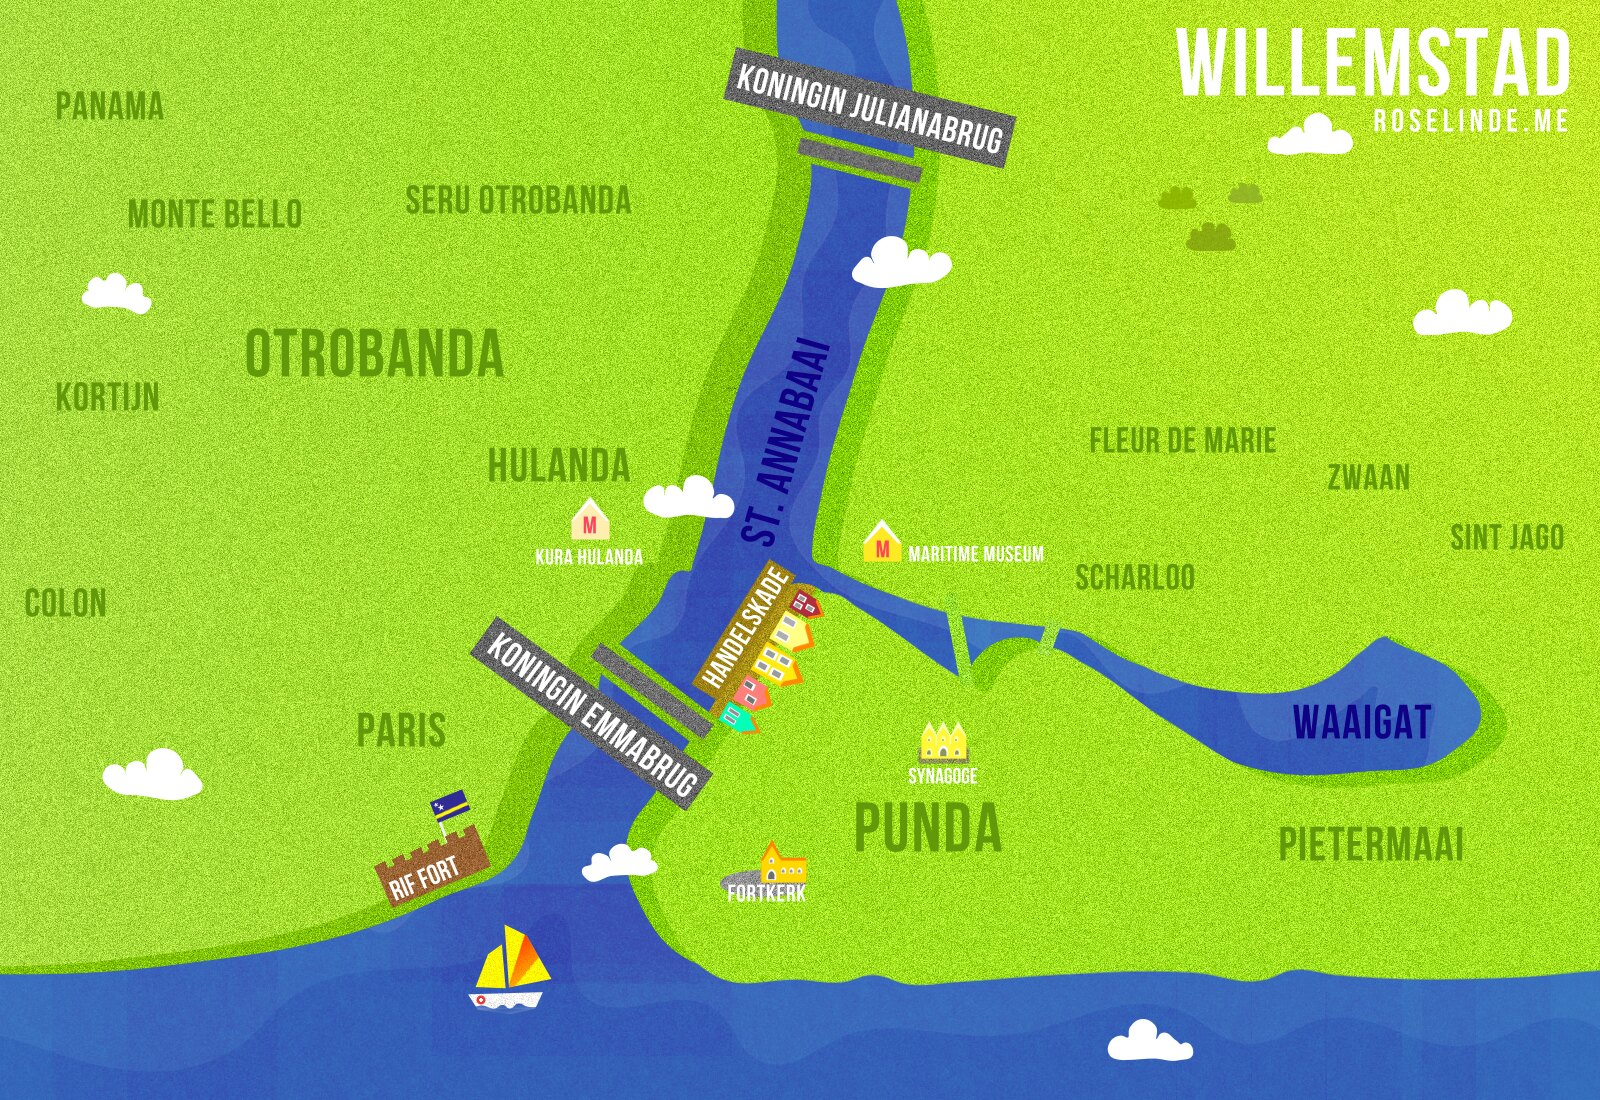 Map for Willemstad City Guide